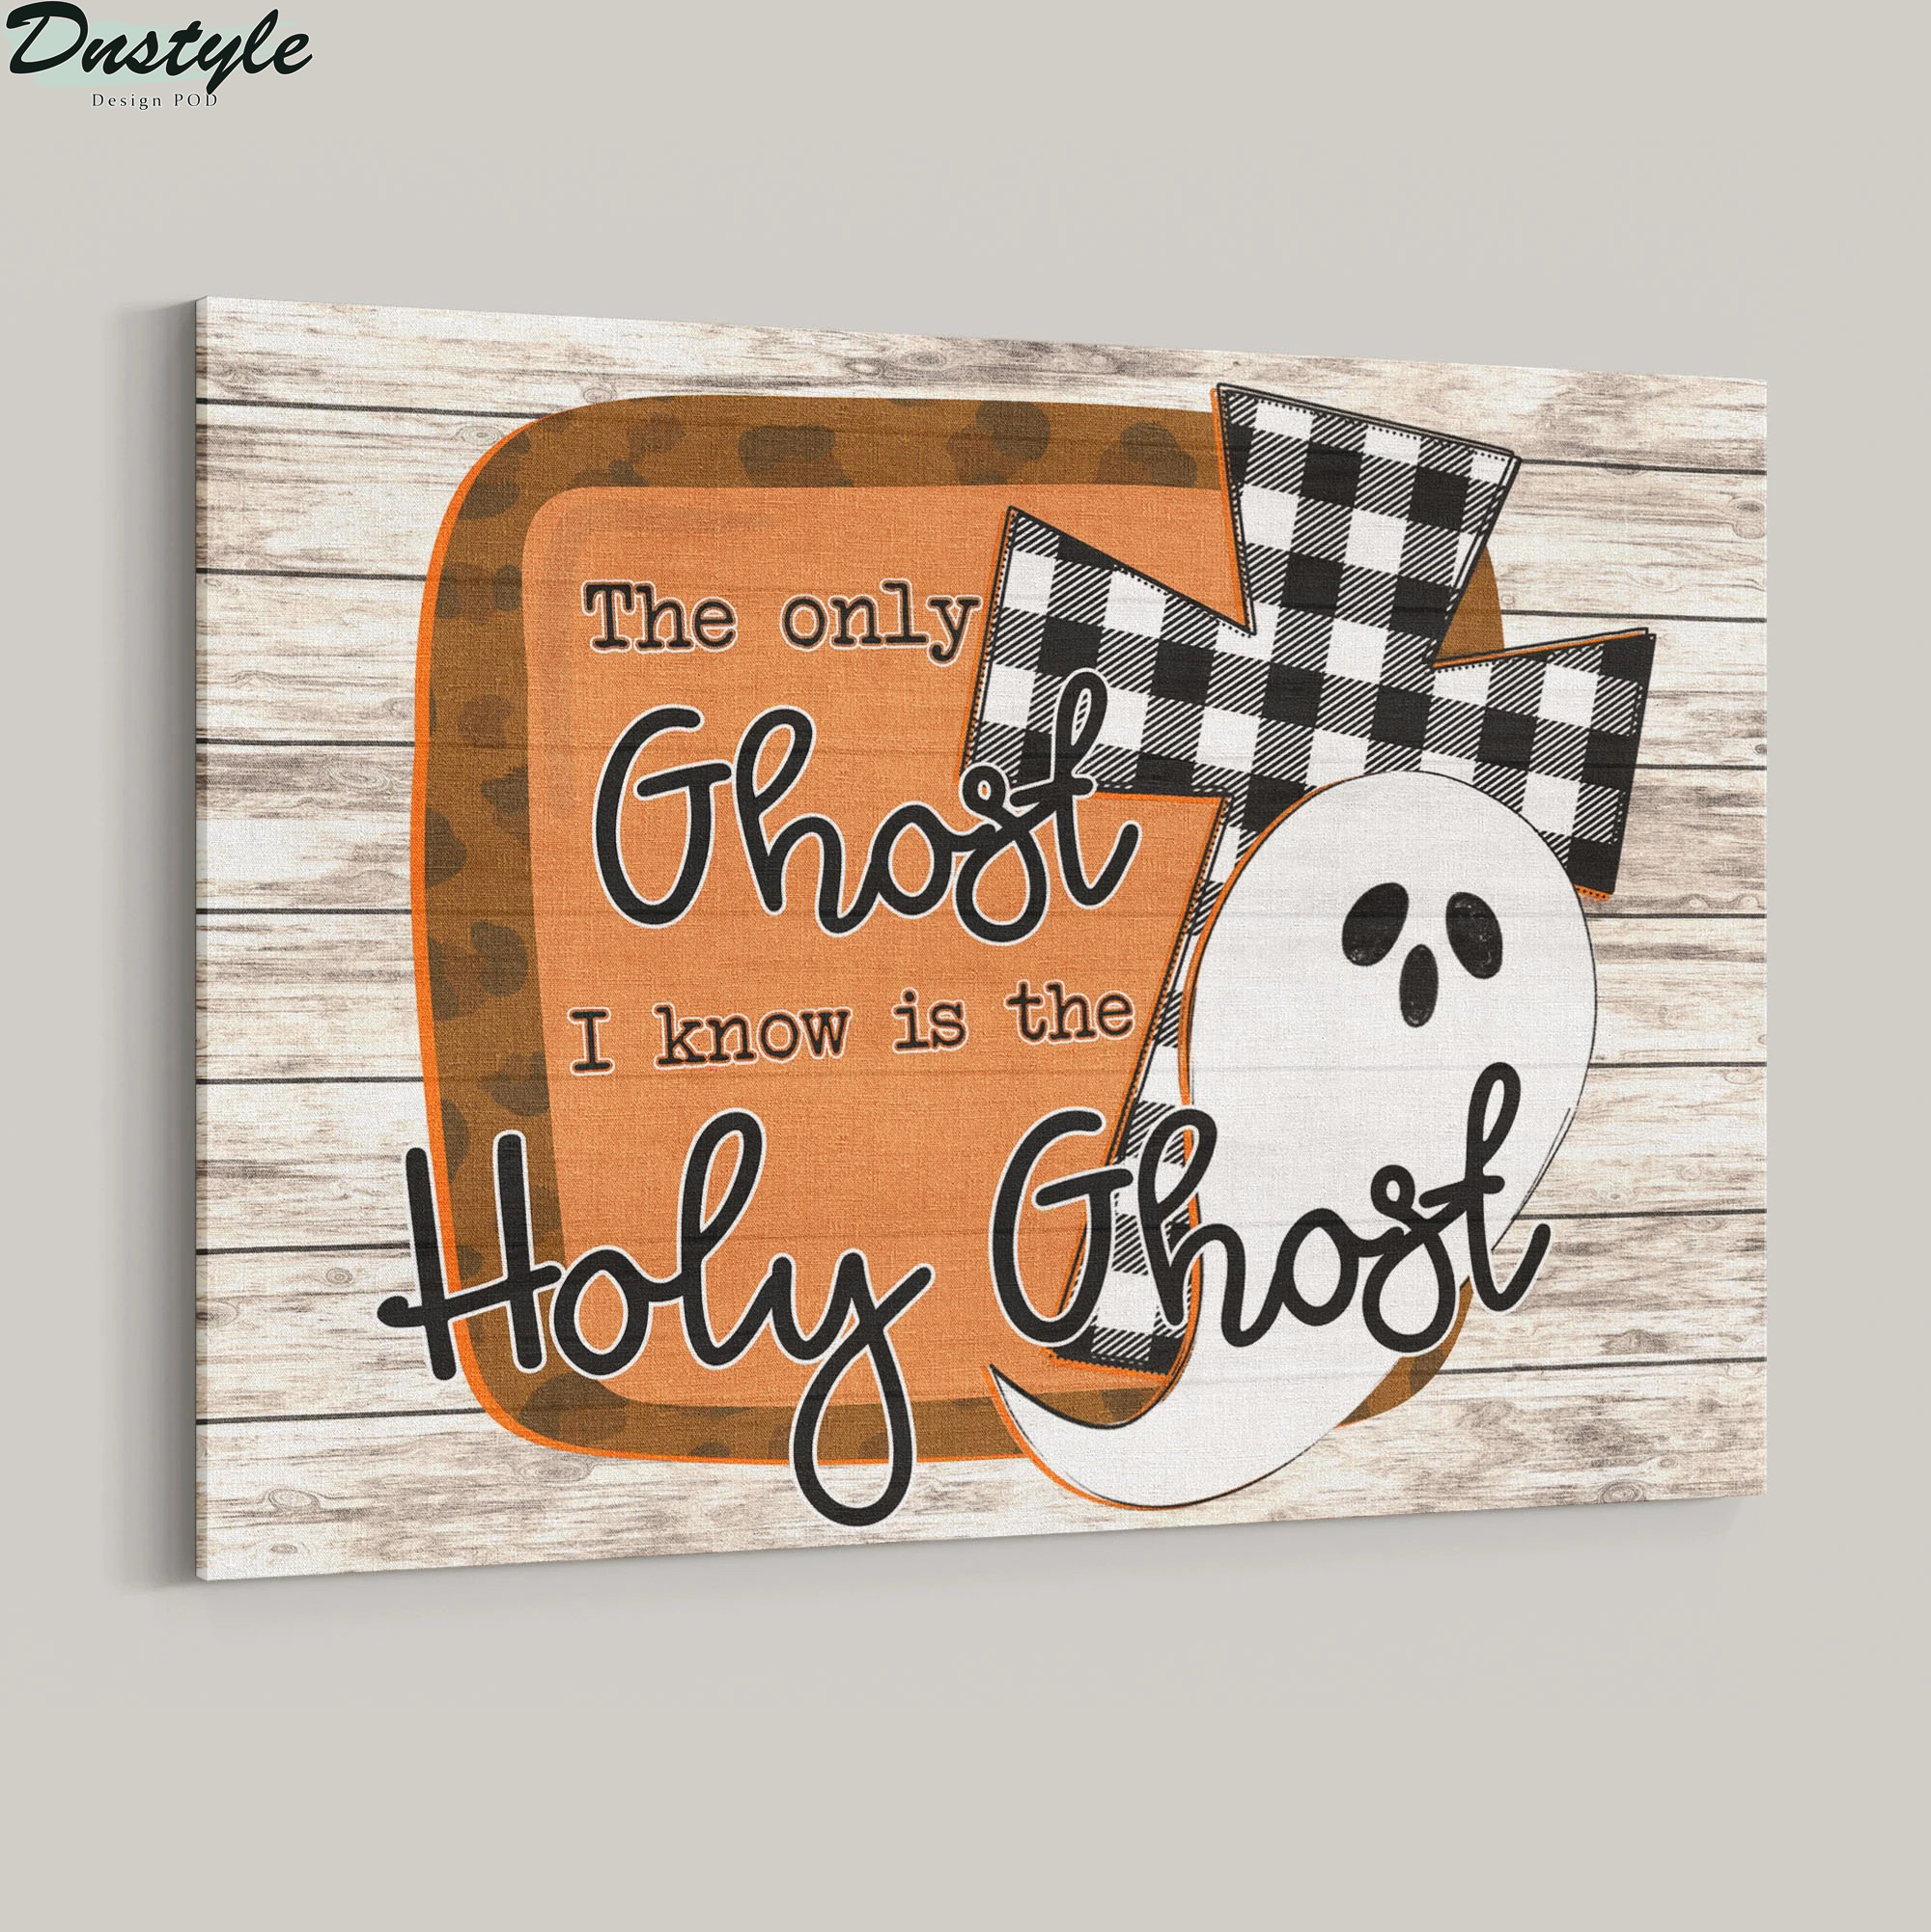 The only ghost I know is the holy ghost canvas